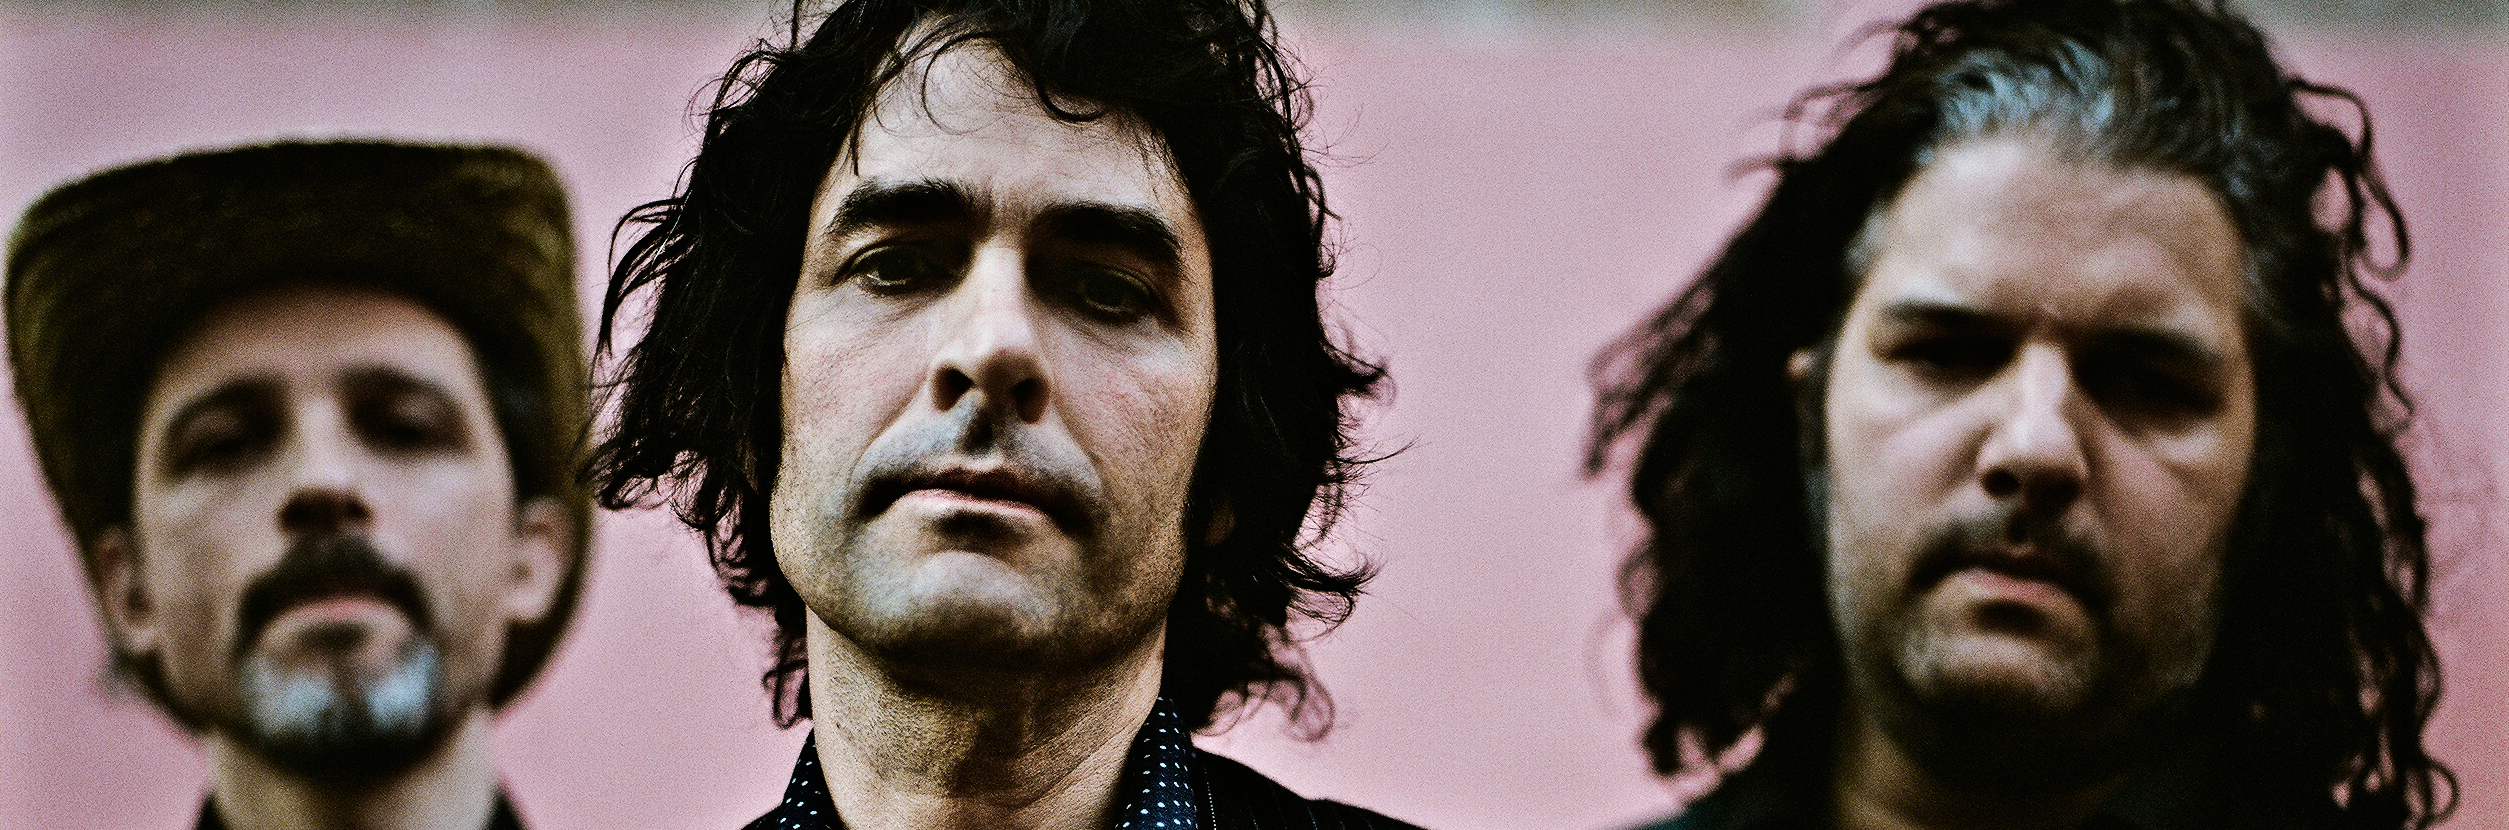 Spencer, Jon Blues Explosion: Promo-Image (2012)